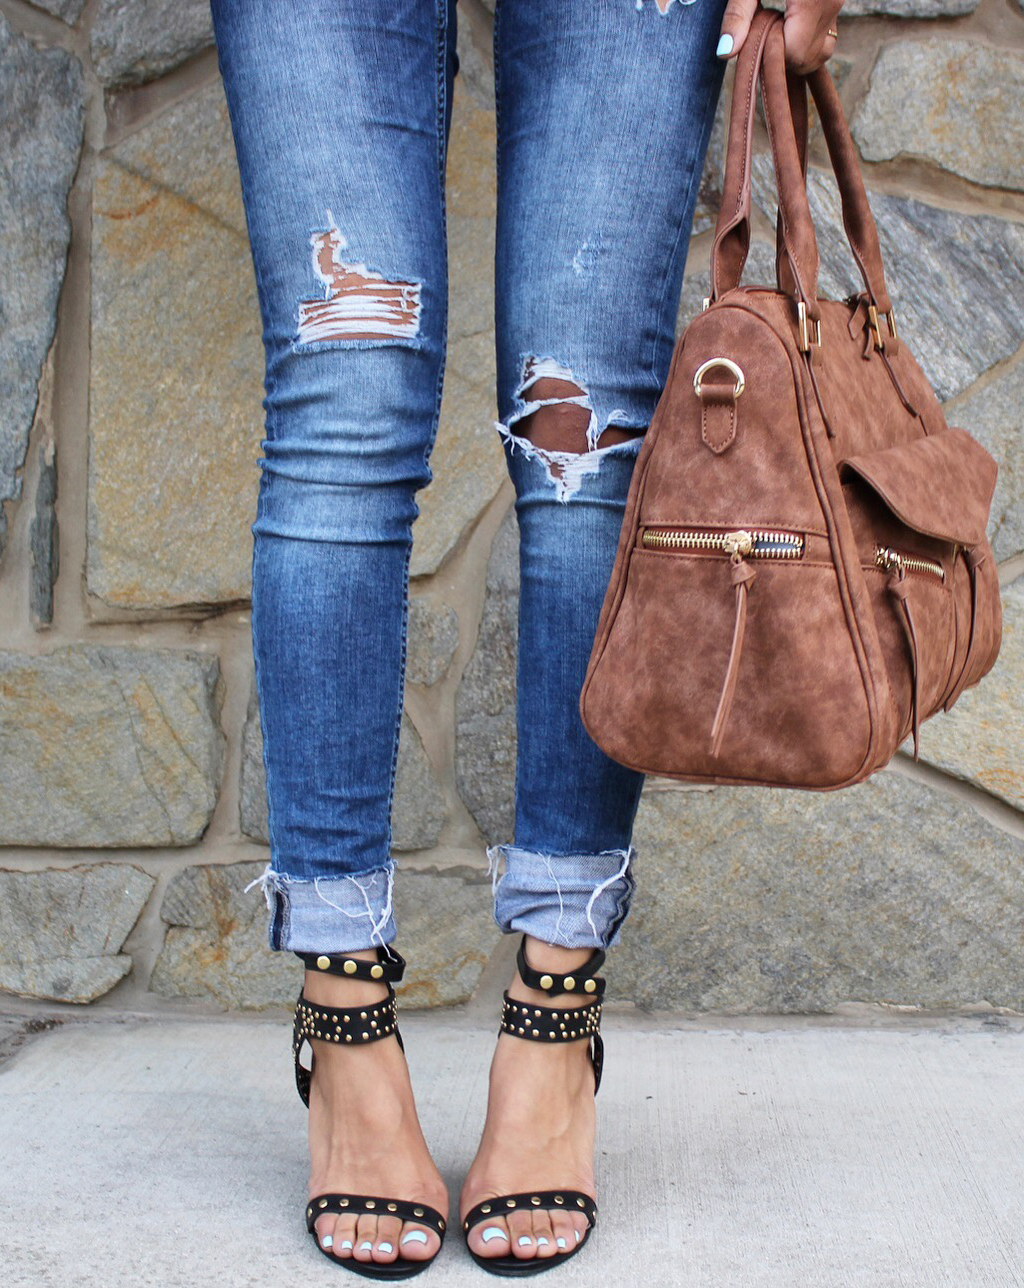 1ef7b643b2c1 11. skinny jeans. Skinny jeans look great with a suede handbag and black  studded sandals!